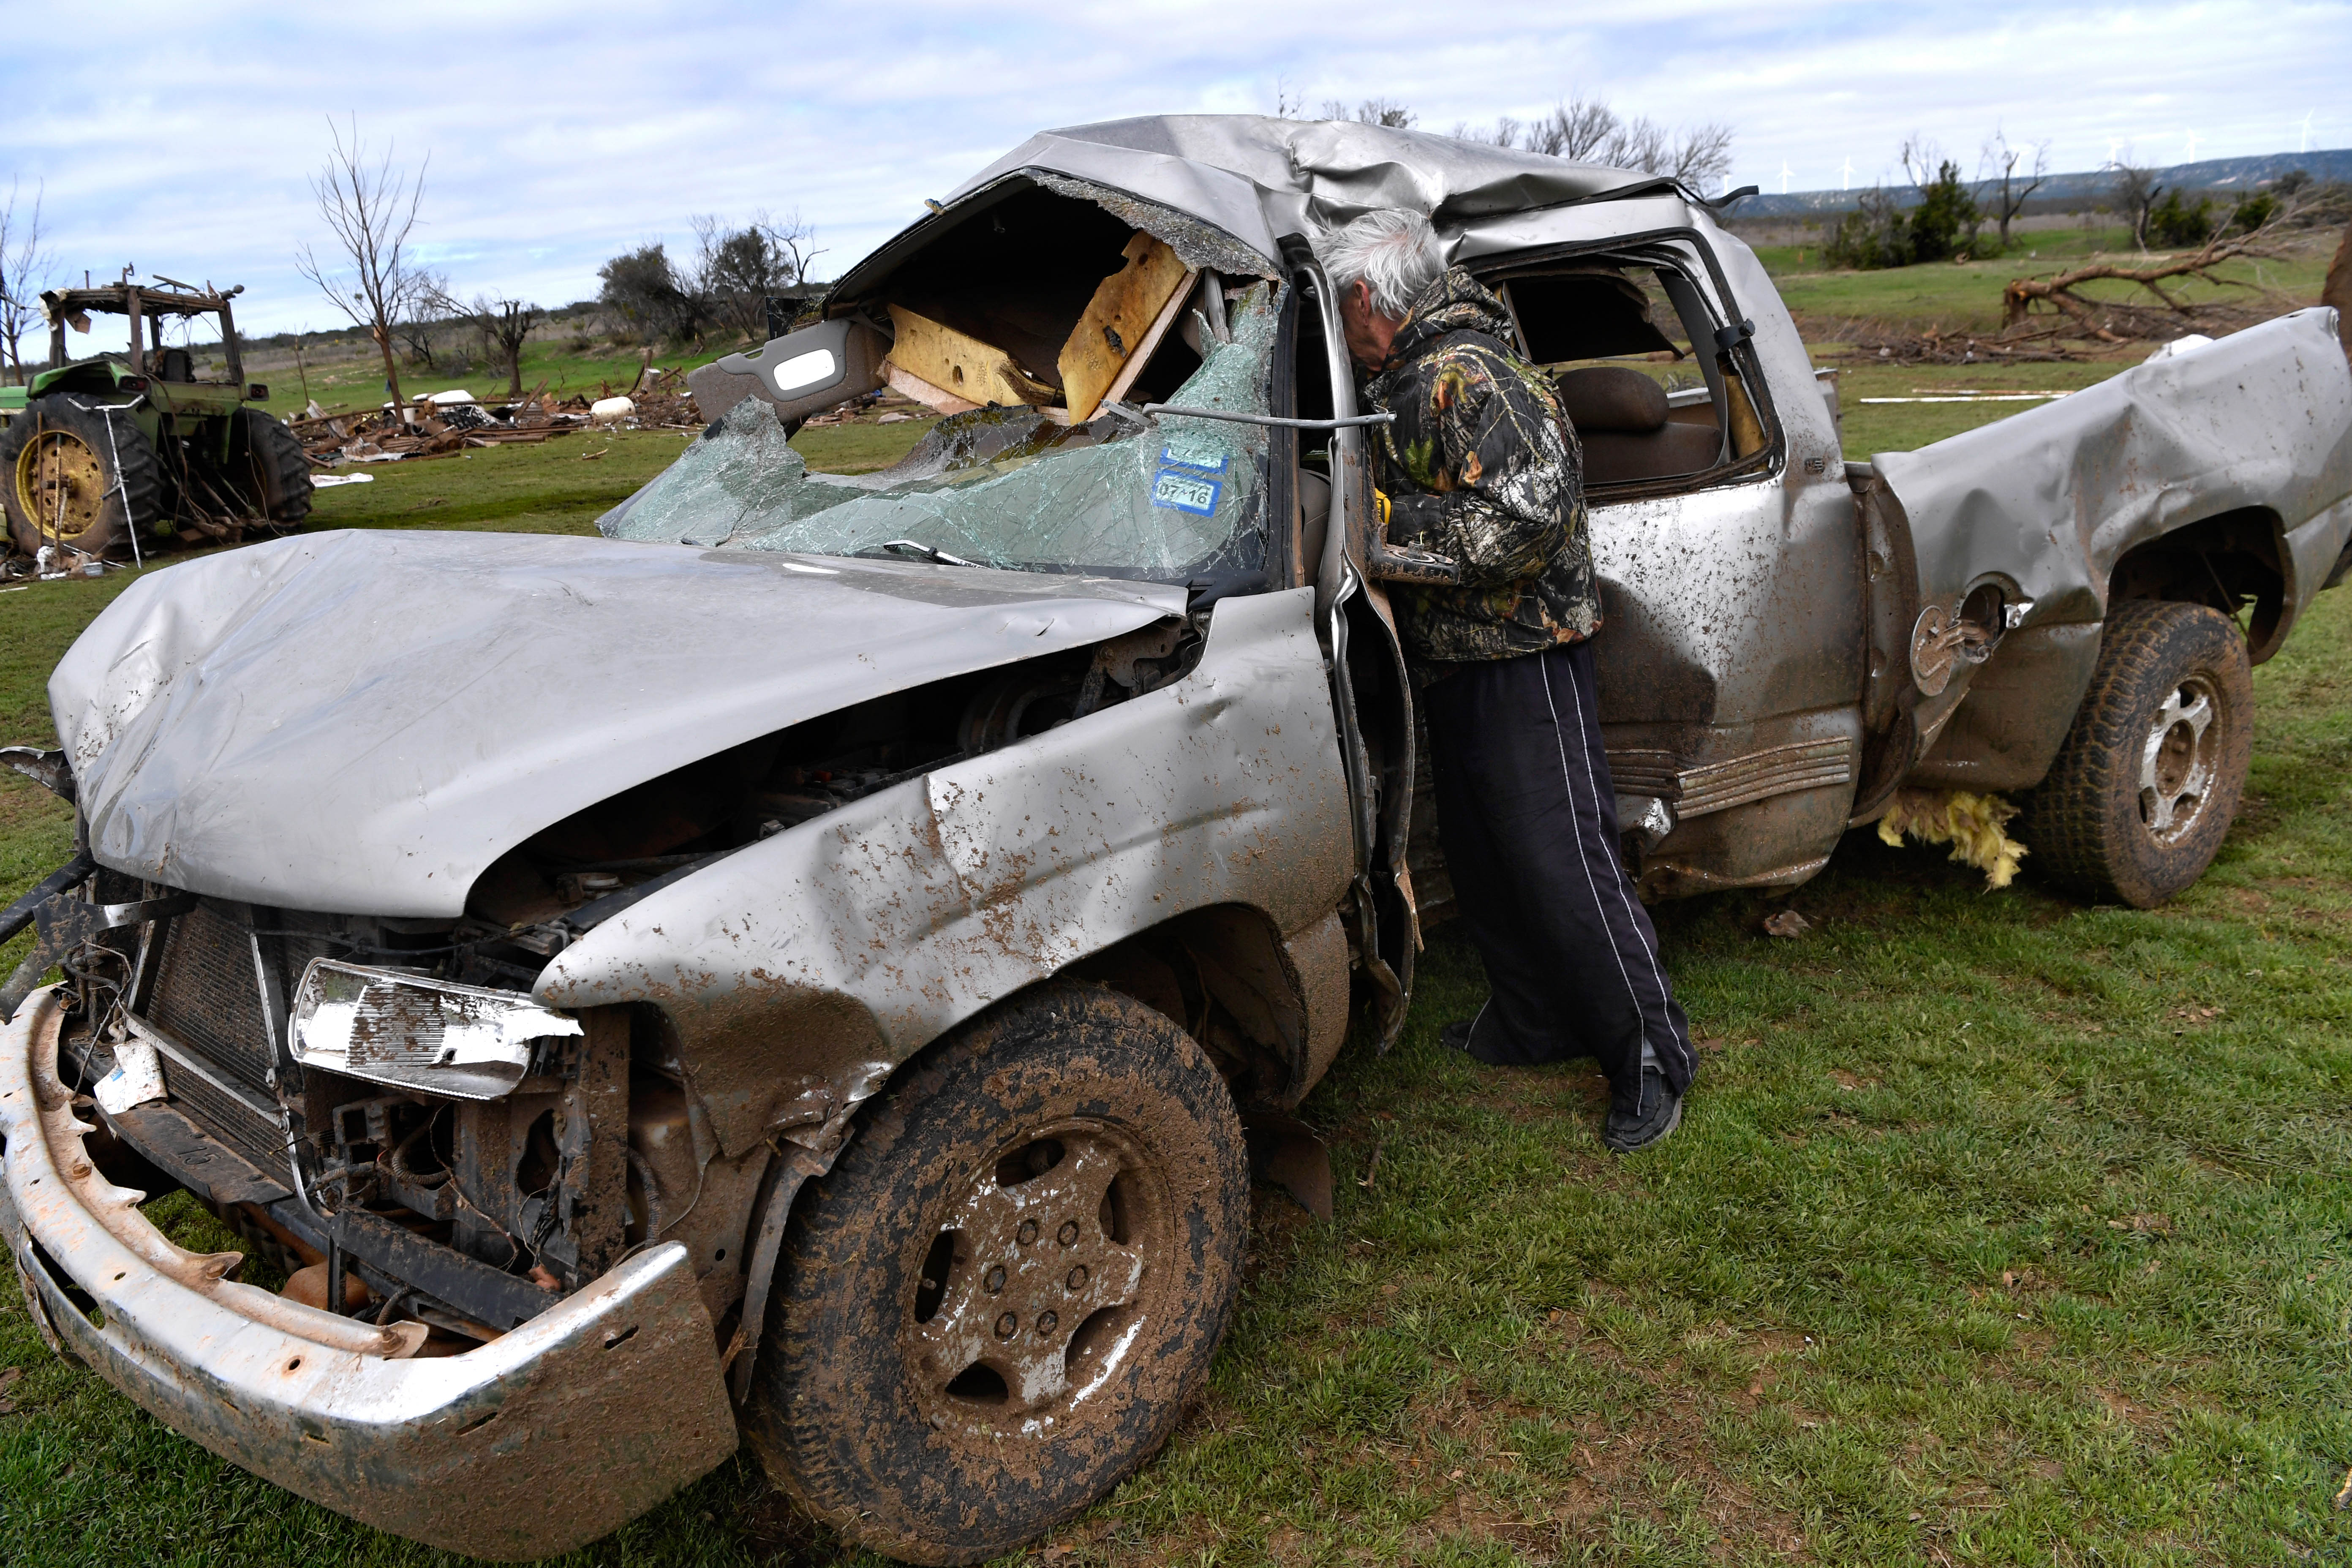 Gary Doan steps into the tree-shaped dent in one of his pickups to retrieve ammunition from the ruined vehicle's center console Friday March 20, 2020. The pickup had been damaged Thursday when a tornado picked it up in the early morning hours on their ranch in the Mulberry Canyon area south of Merkel.